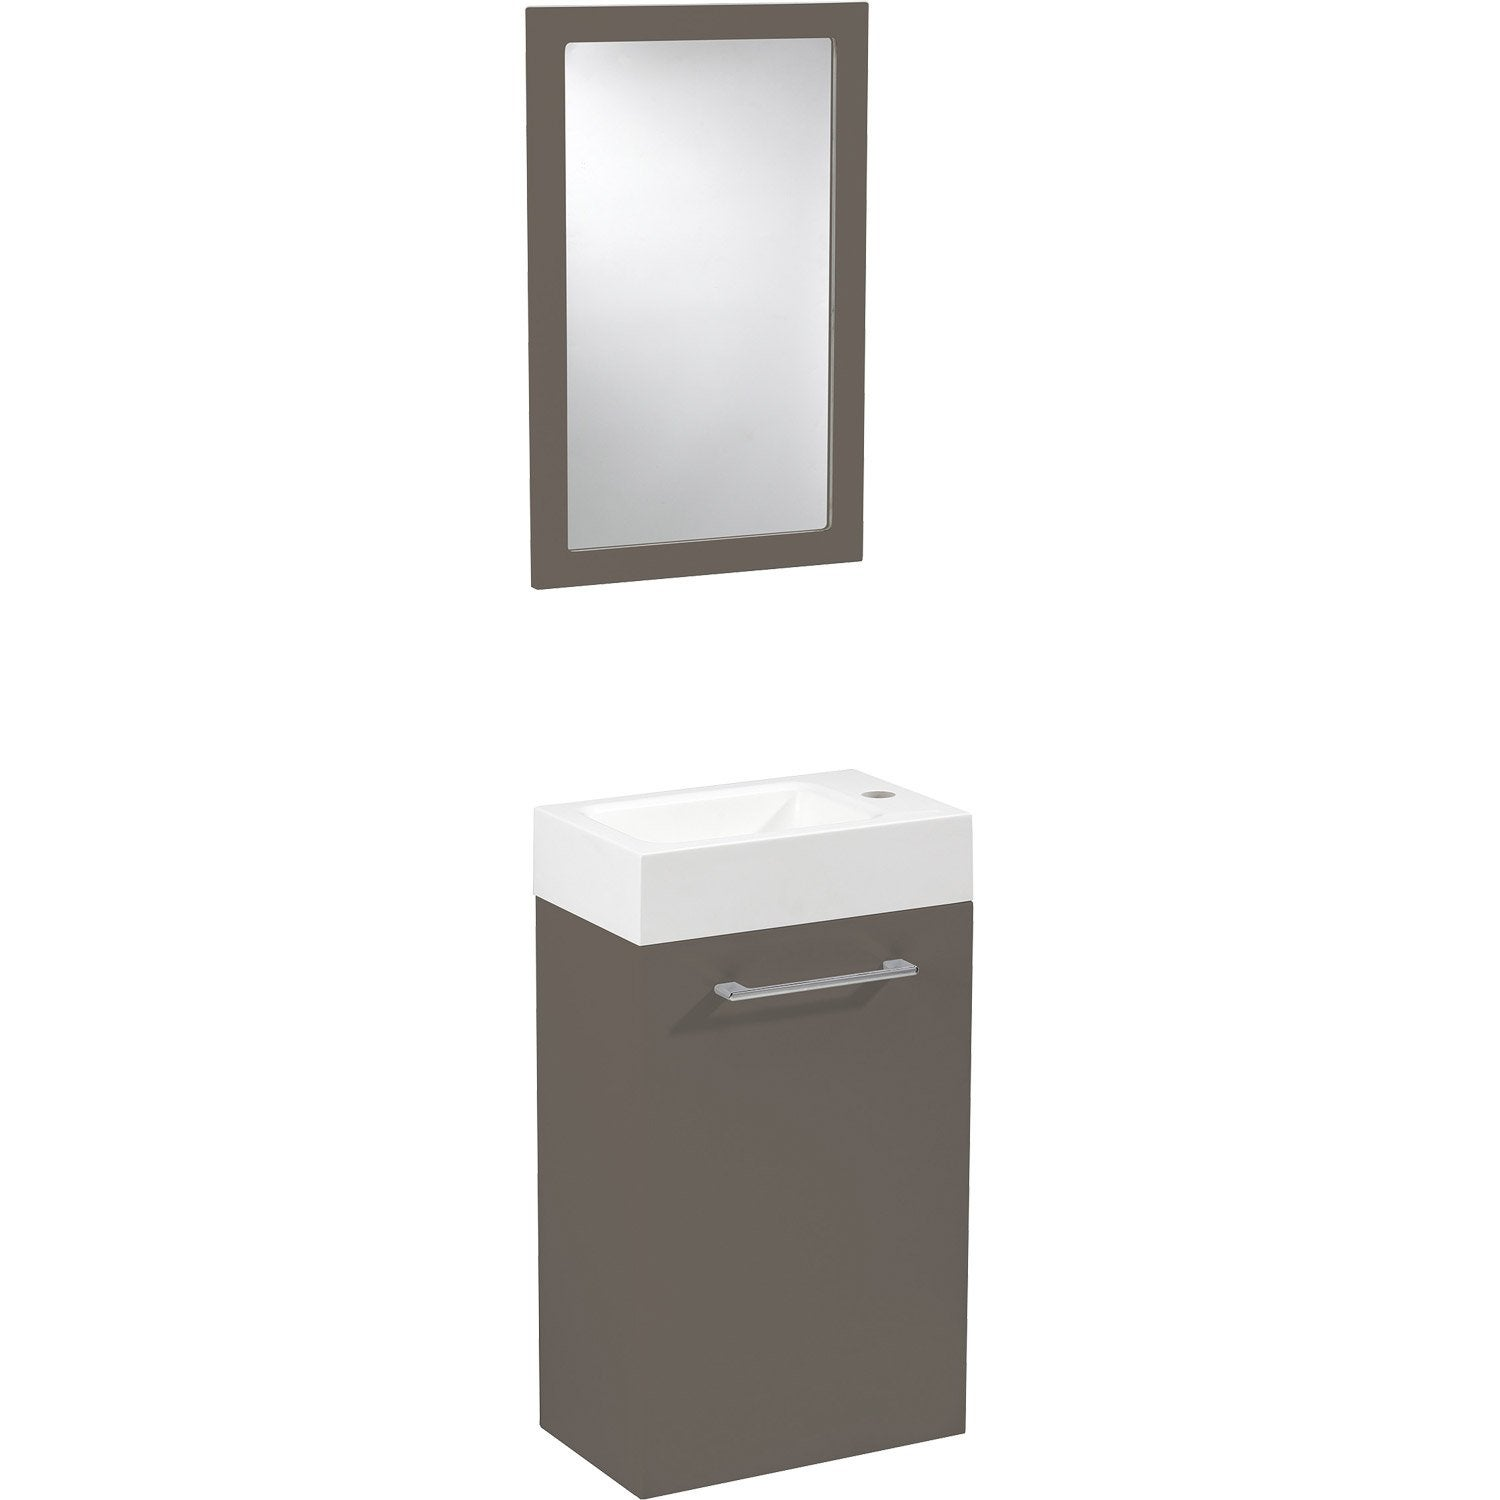 meuble lave mains avec miroir sensea remix brun taupe n 3 leroy merlin. Black Bedroom Furniture Sets. Home Design Ideas